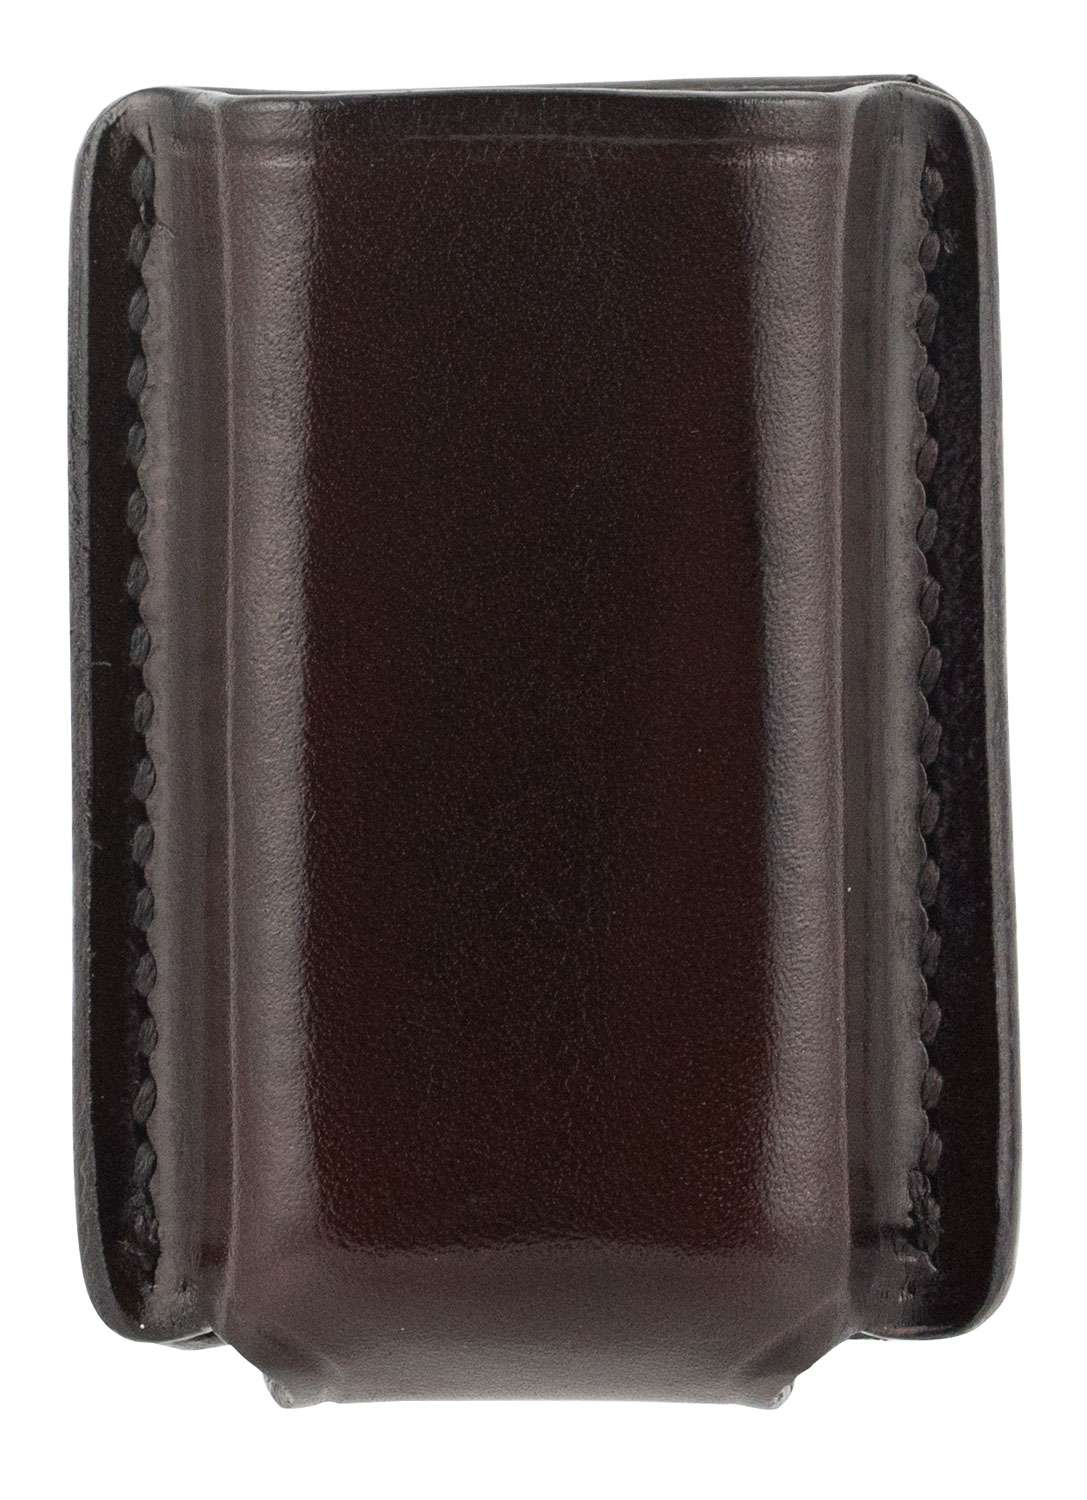 Galco CONMC26H Concealable Mag Case Brown Leather M&P Shield .45 2.0